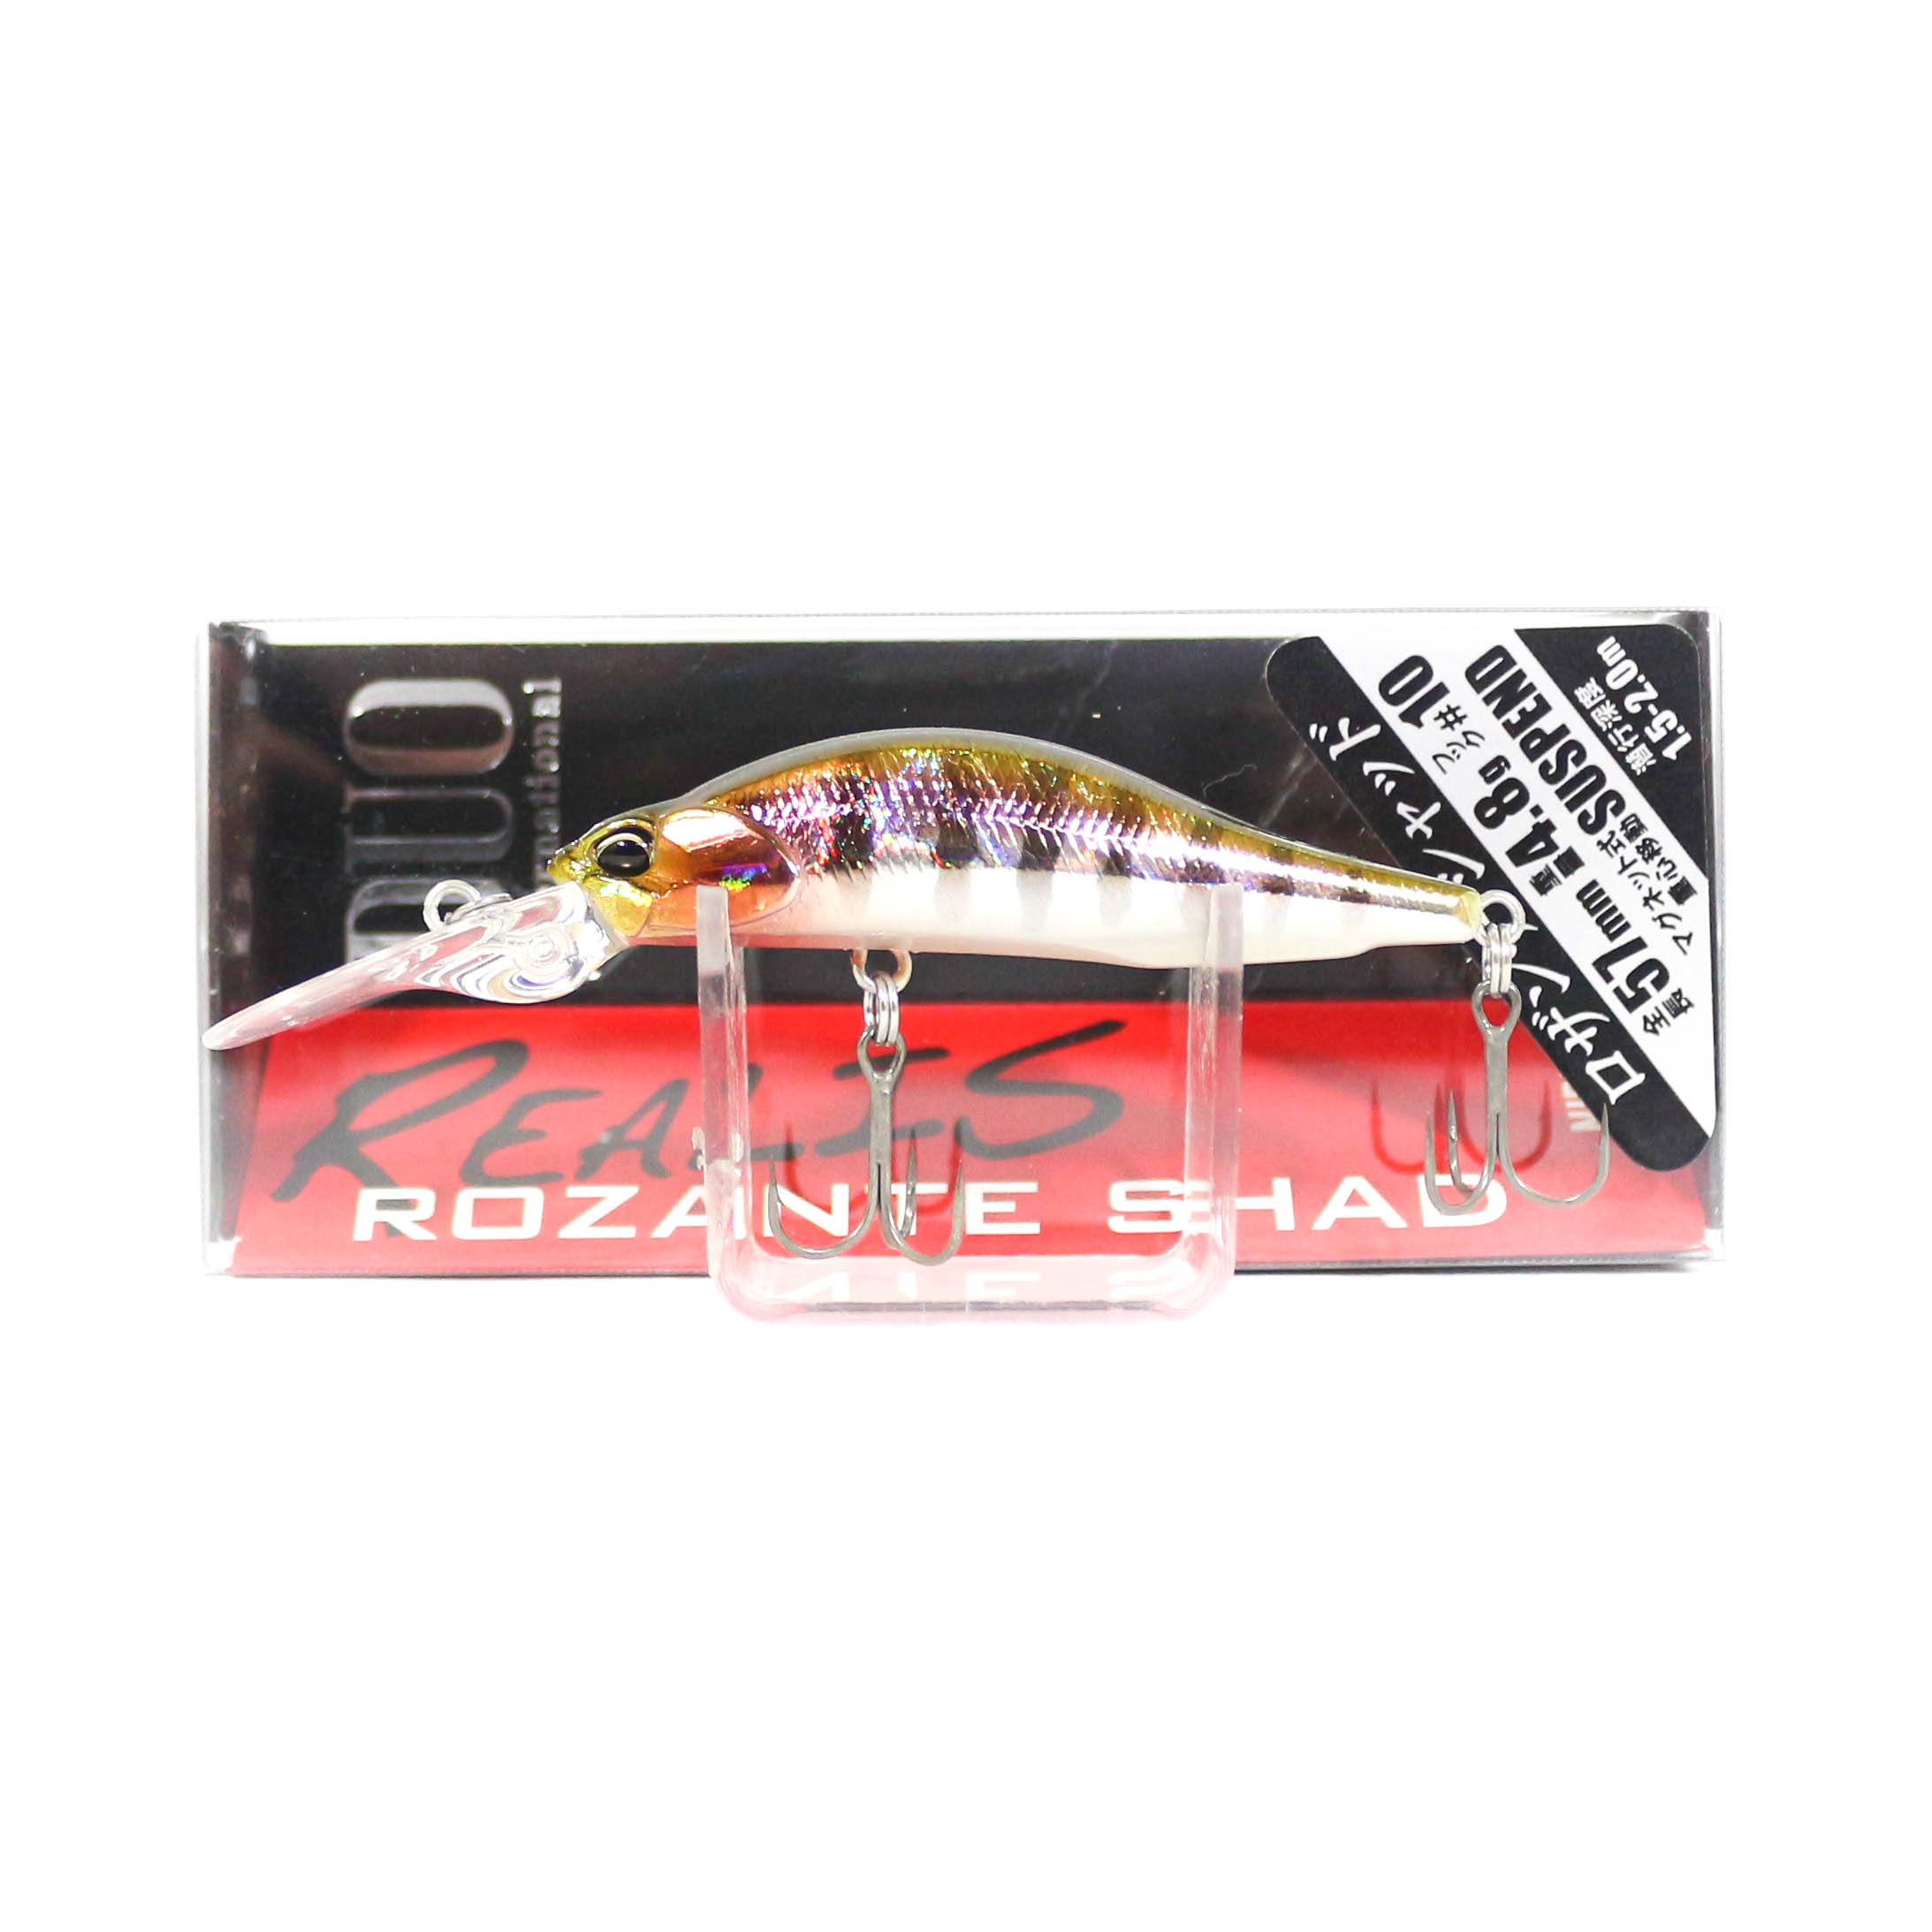 Duo Realis Rozante Shad 57 MR Suspend Lure ADA3058 (9218)